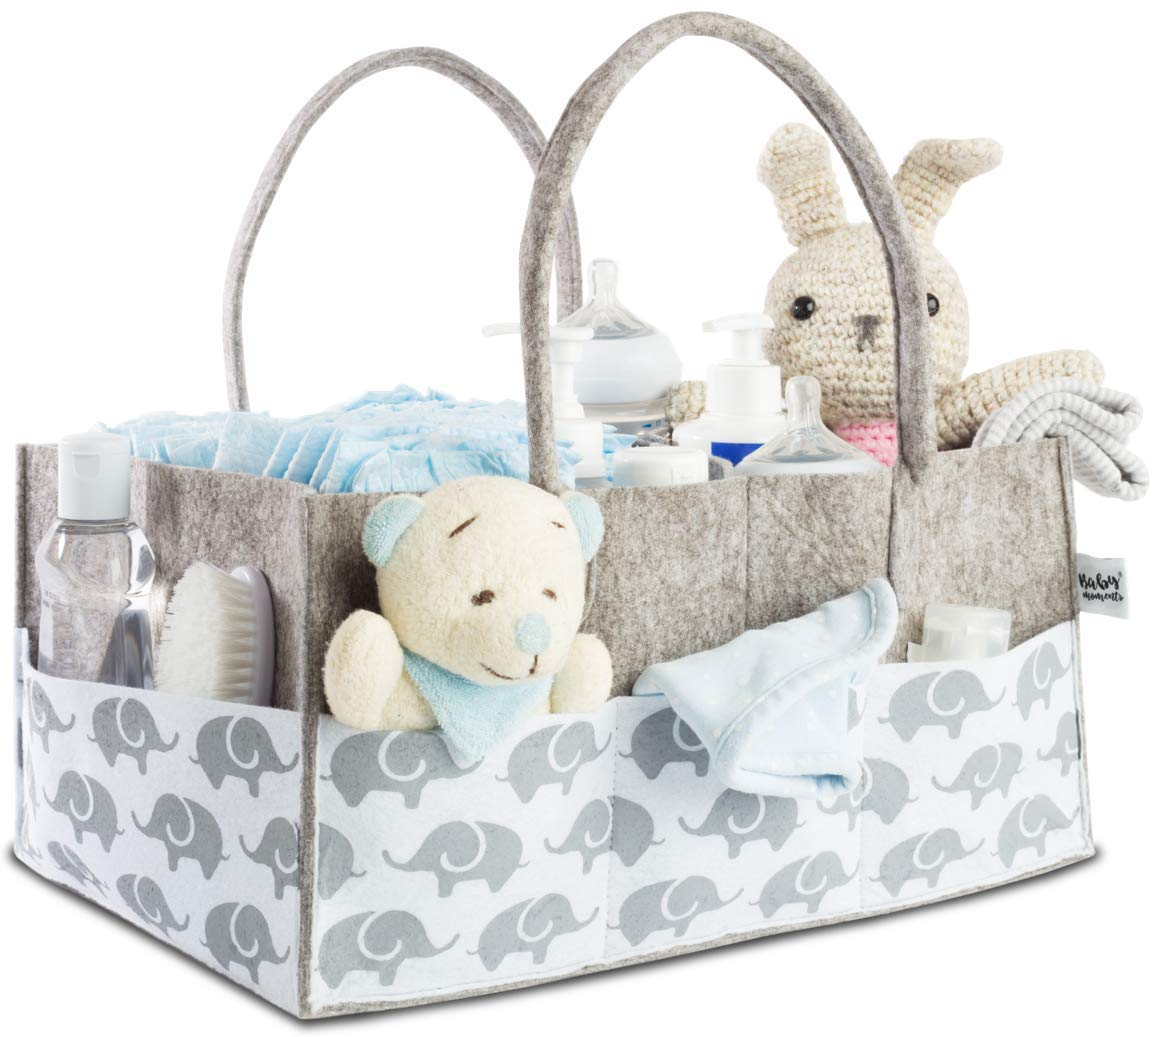 Baby Diaper Caddy Organizer for Nursery Essentials - Baby Moments Storage Bin for Changing Table, Nice Baby Shower Gift Basket for Boys and Girls by Bebo Beba